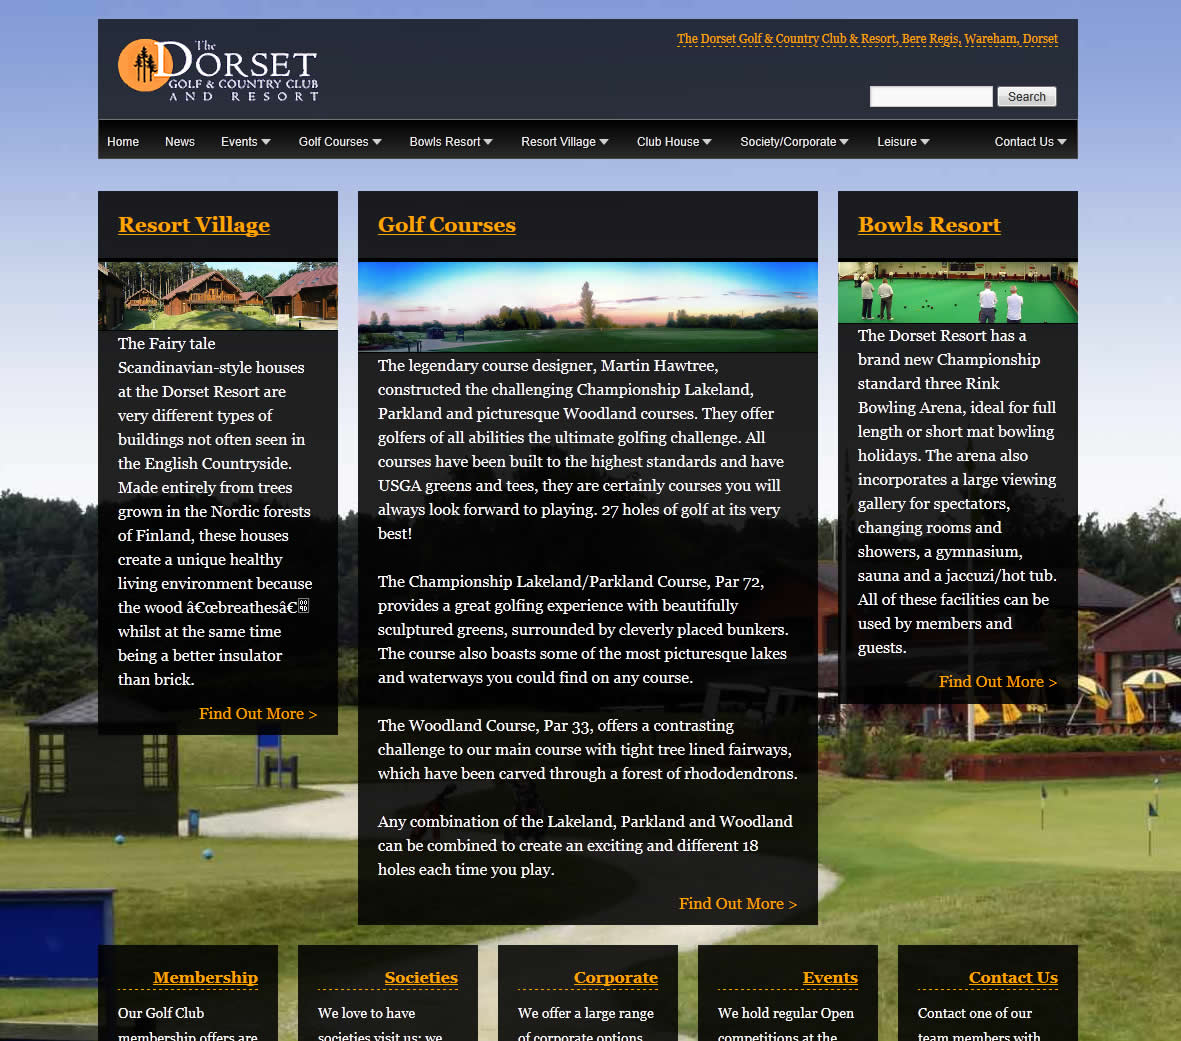 Dorset Golf and Country Club screenshot